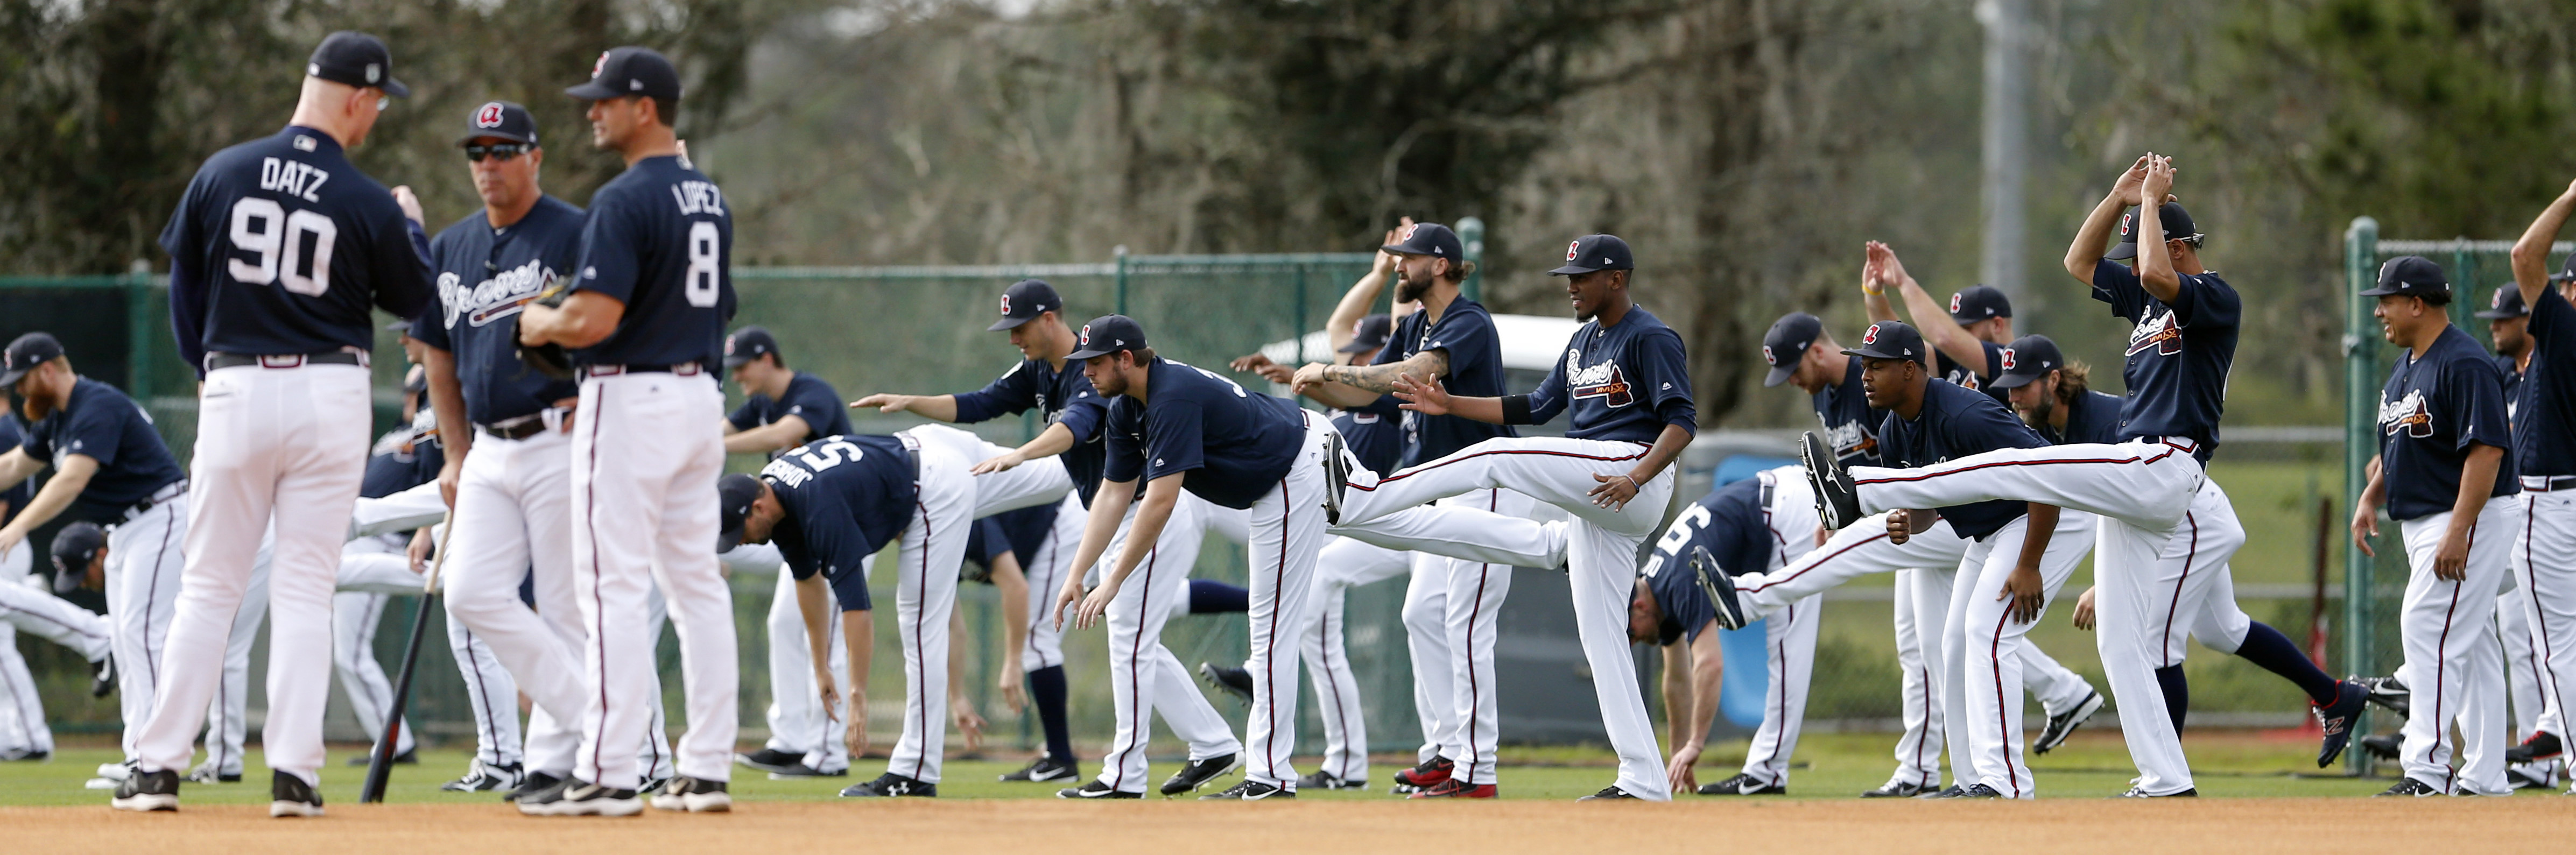 9879145-mlb-atlanta-braves-workouts